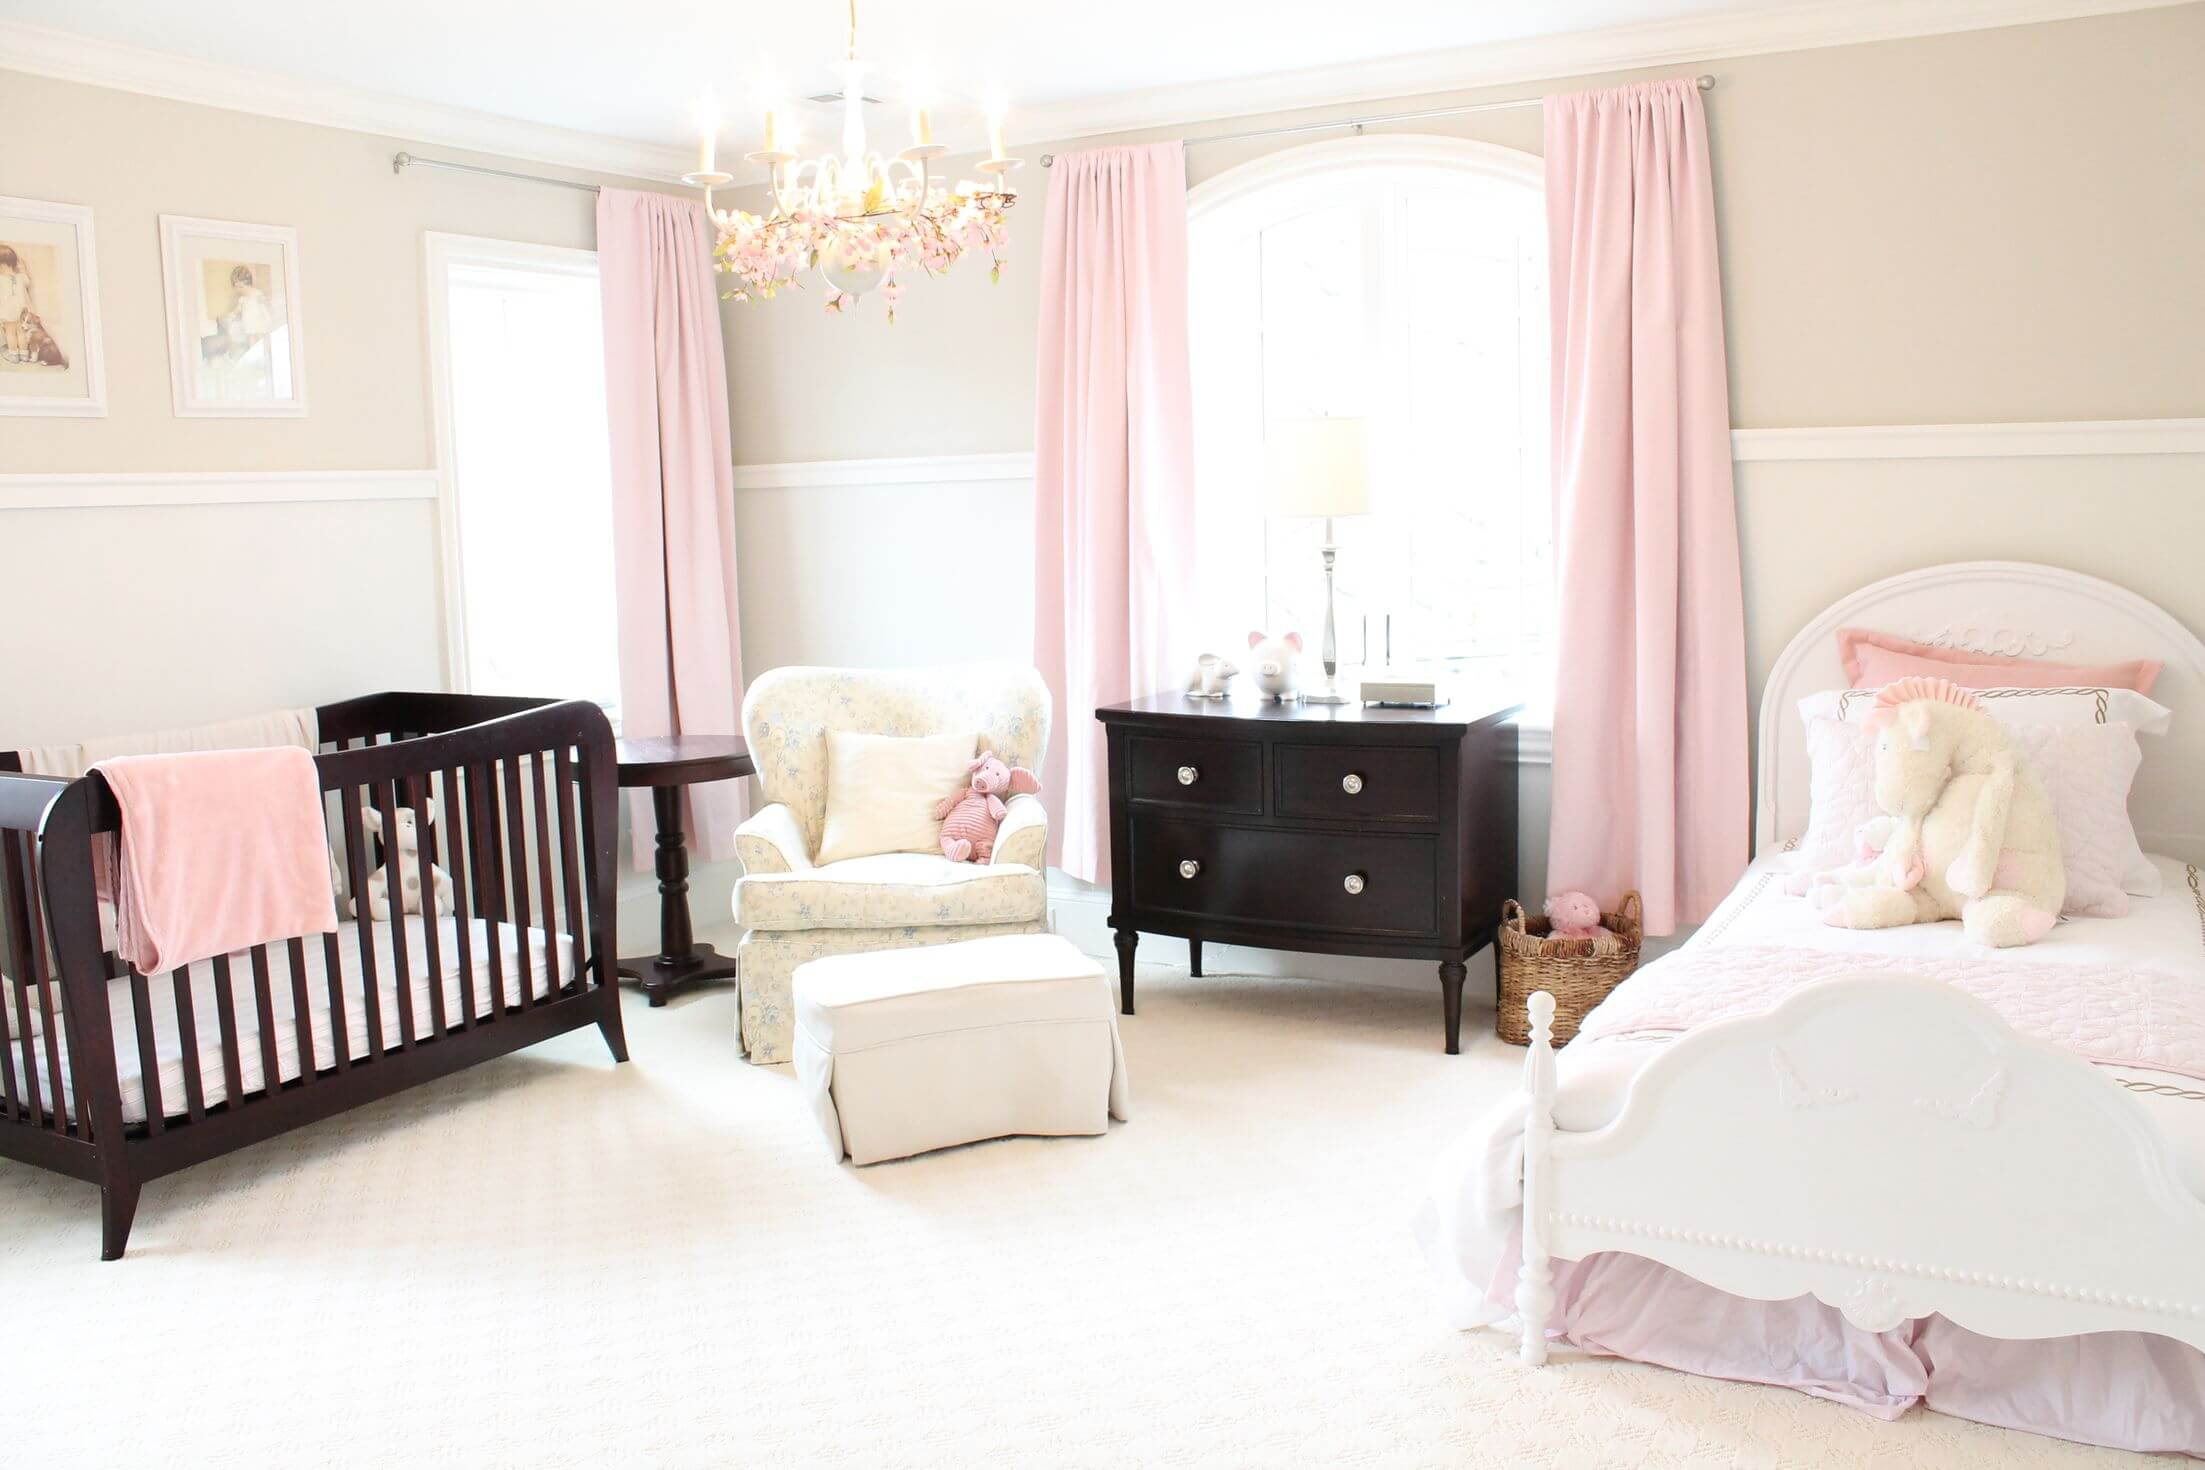 18 baby girl nursery ideas themes designs pictures Pink room with white furniture